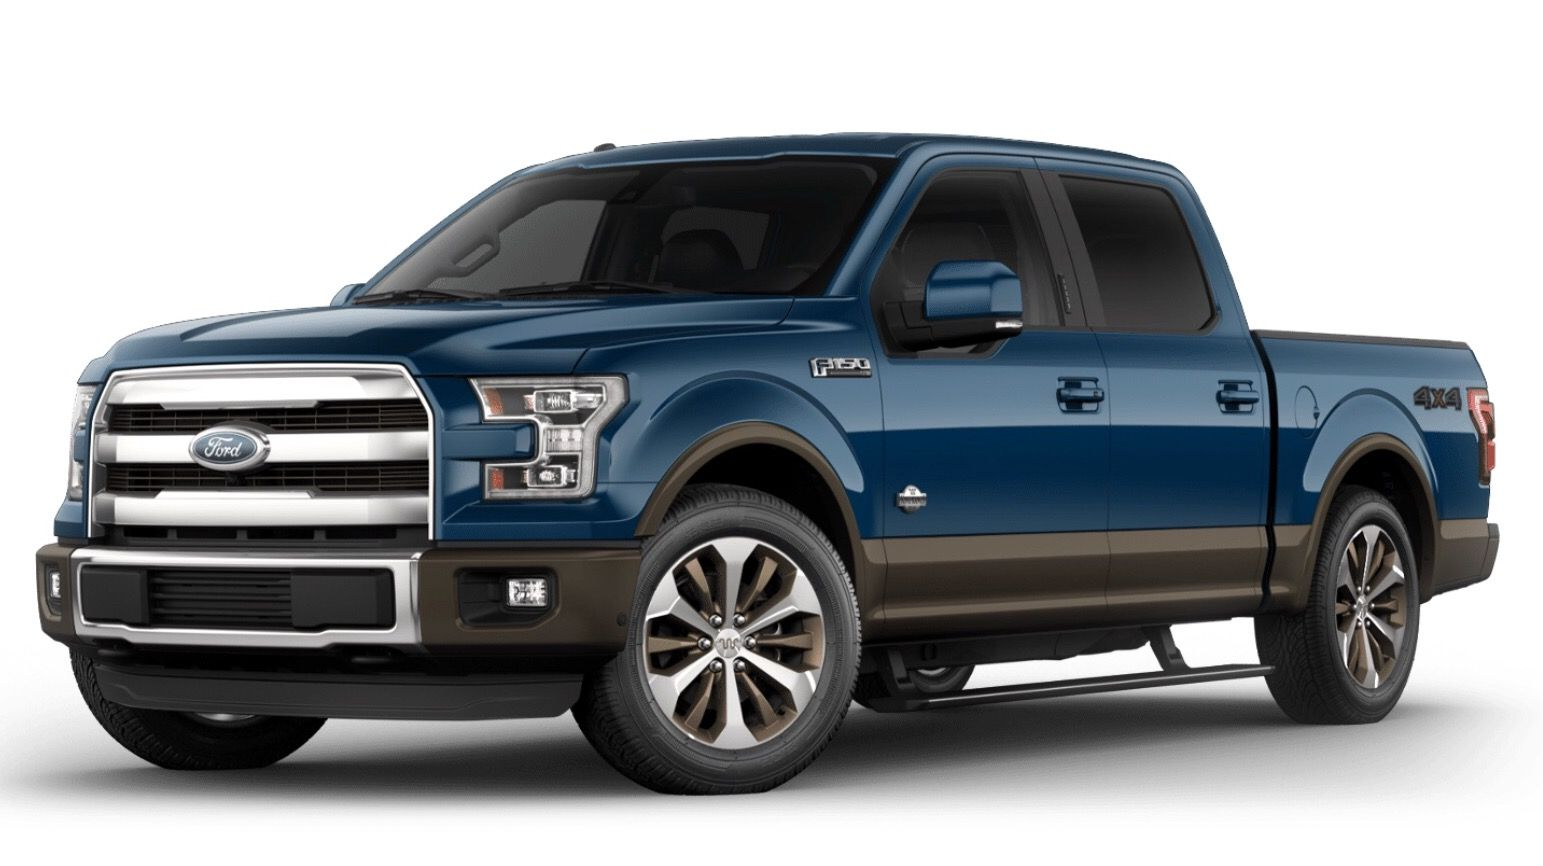 2017 Ford F150 Blue Jeans King Ranch Ford f150, King